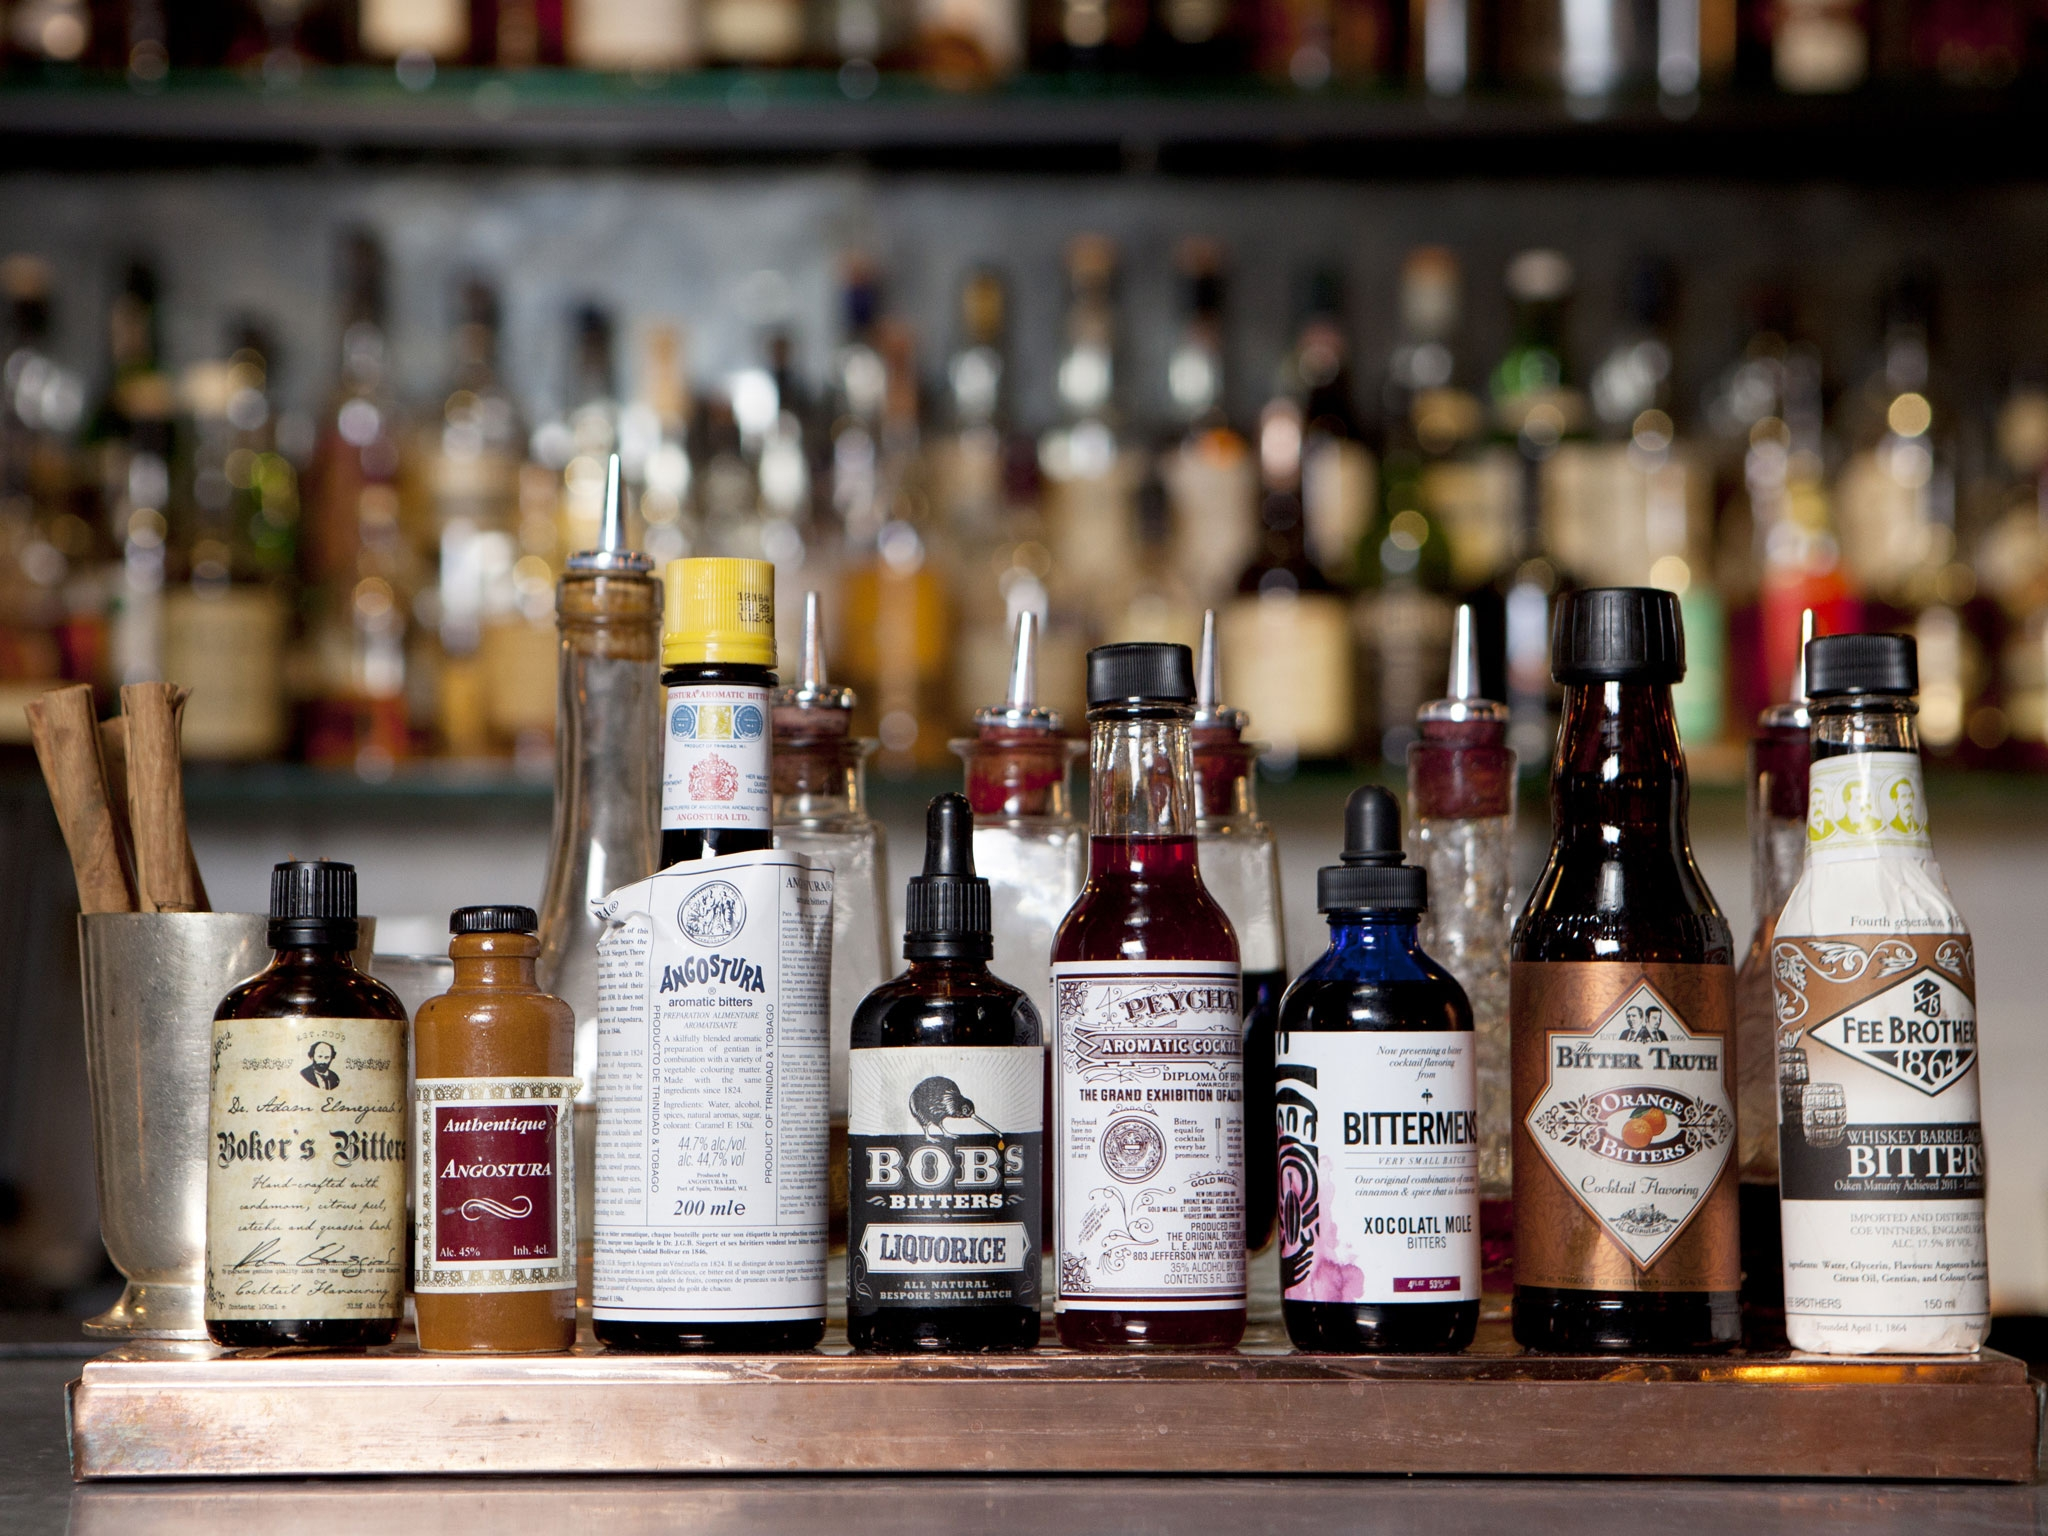 Many Bitters Products – A Risk To Consumers